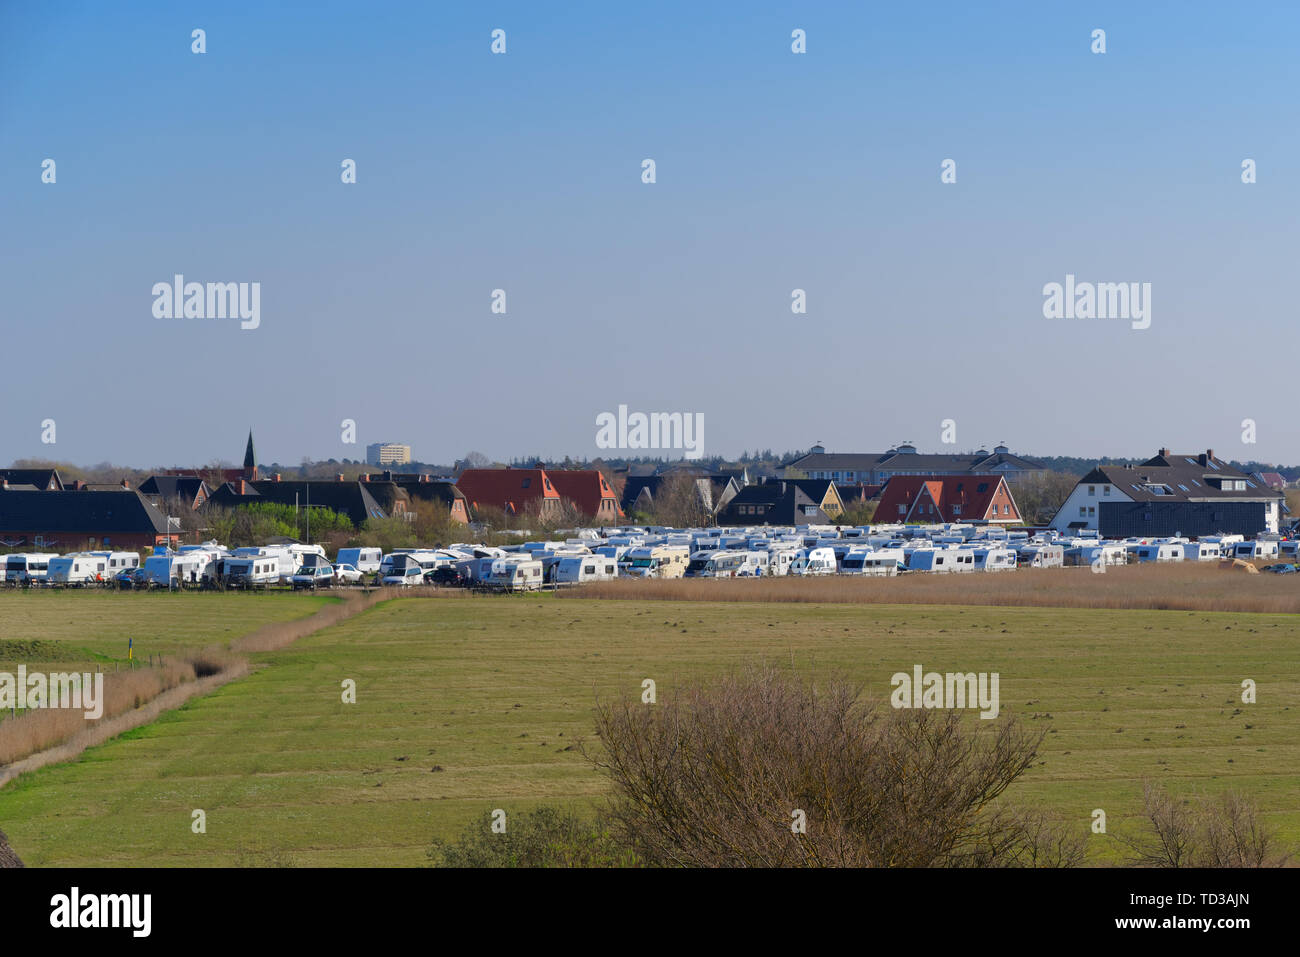 Sankt Peter-Ording, Germany - April 19, 2019: A lot of camping trailers parking in famous holiday region Sankt Peter-Ording, northern Germany Stock Photo